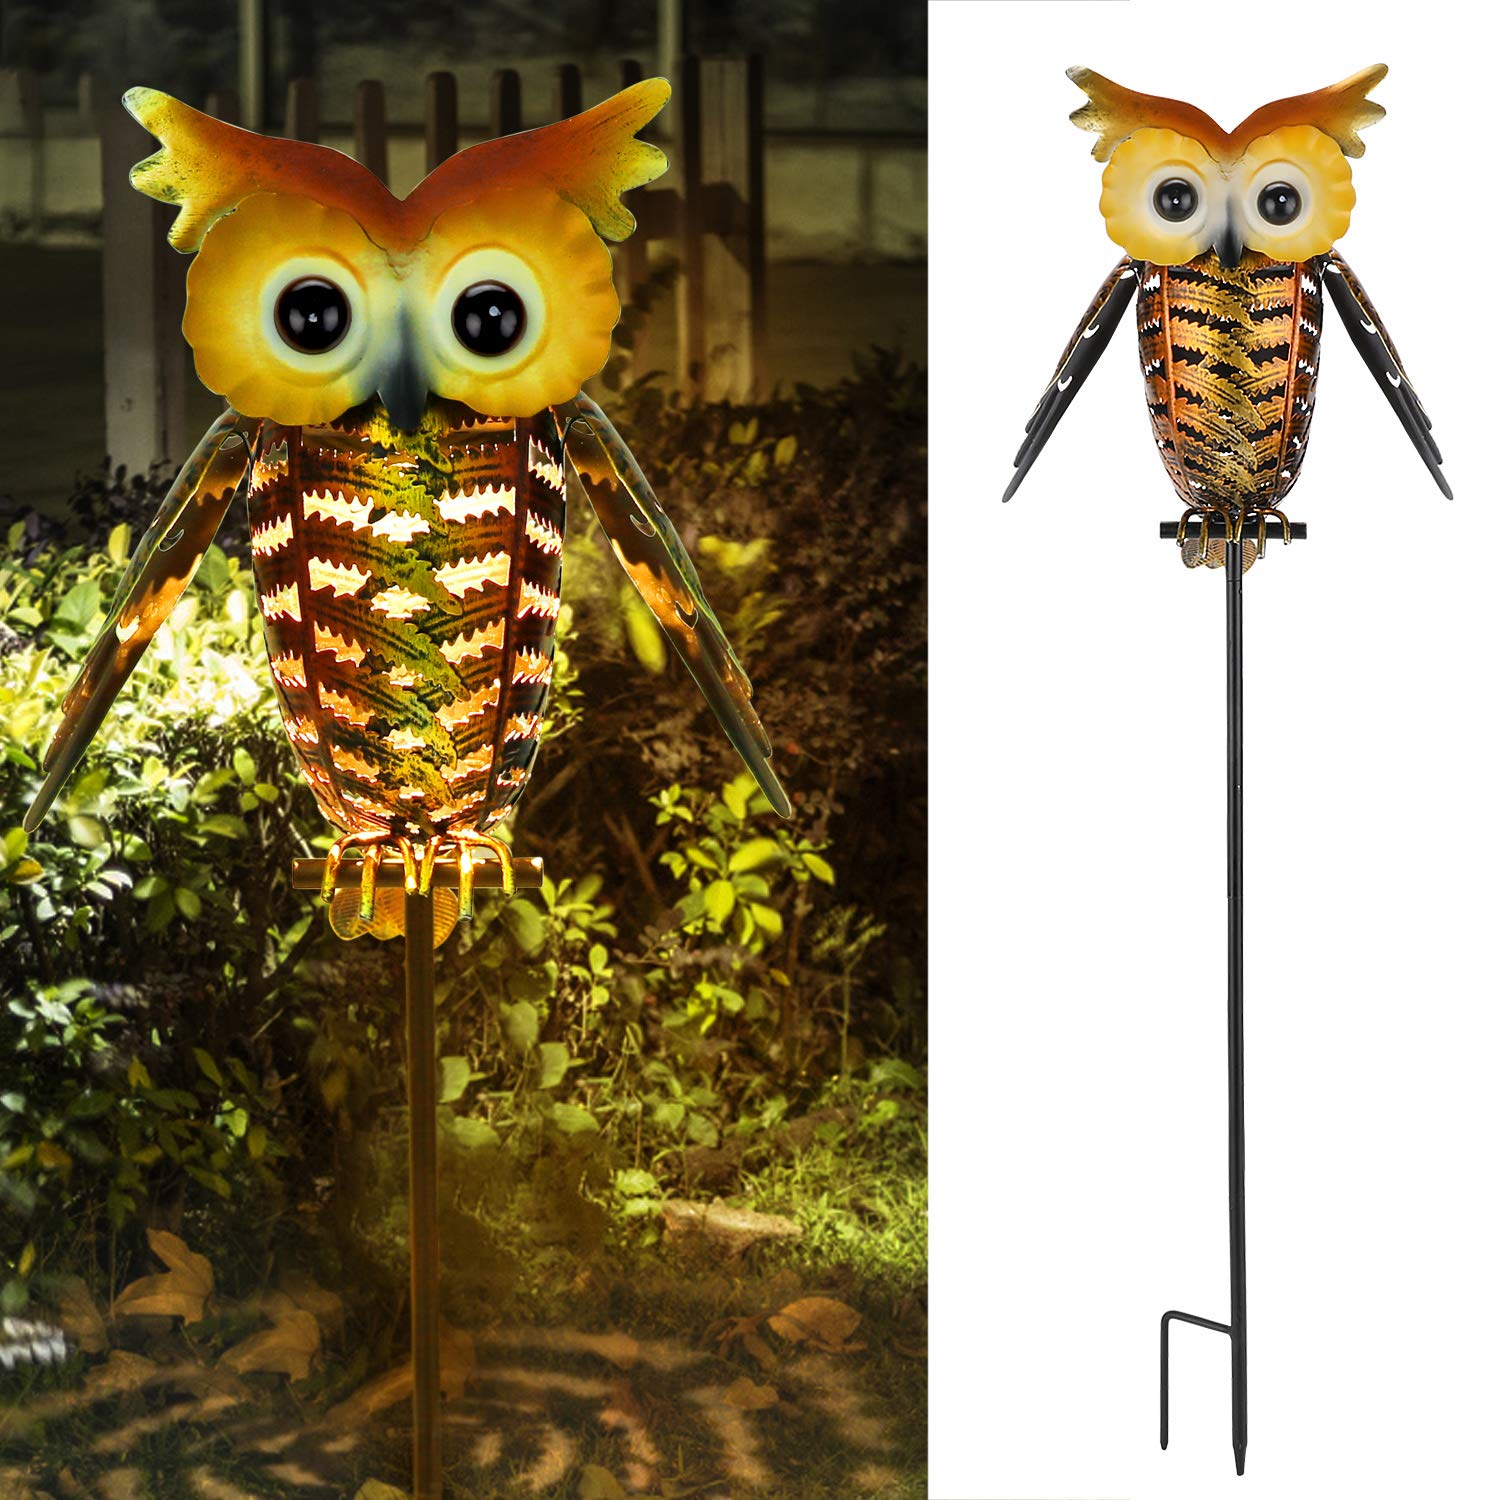 Philonext Garden Solar Outdoor Lanterns,Lights Hanging Outdoor, Adorable and Full of Character Owl Solar Light, Decorative Garden Lights for Walkway,Pathway,Yard,Lawn